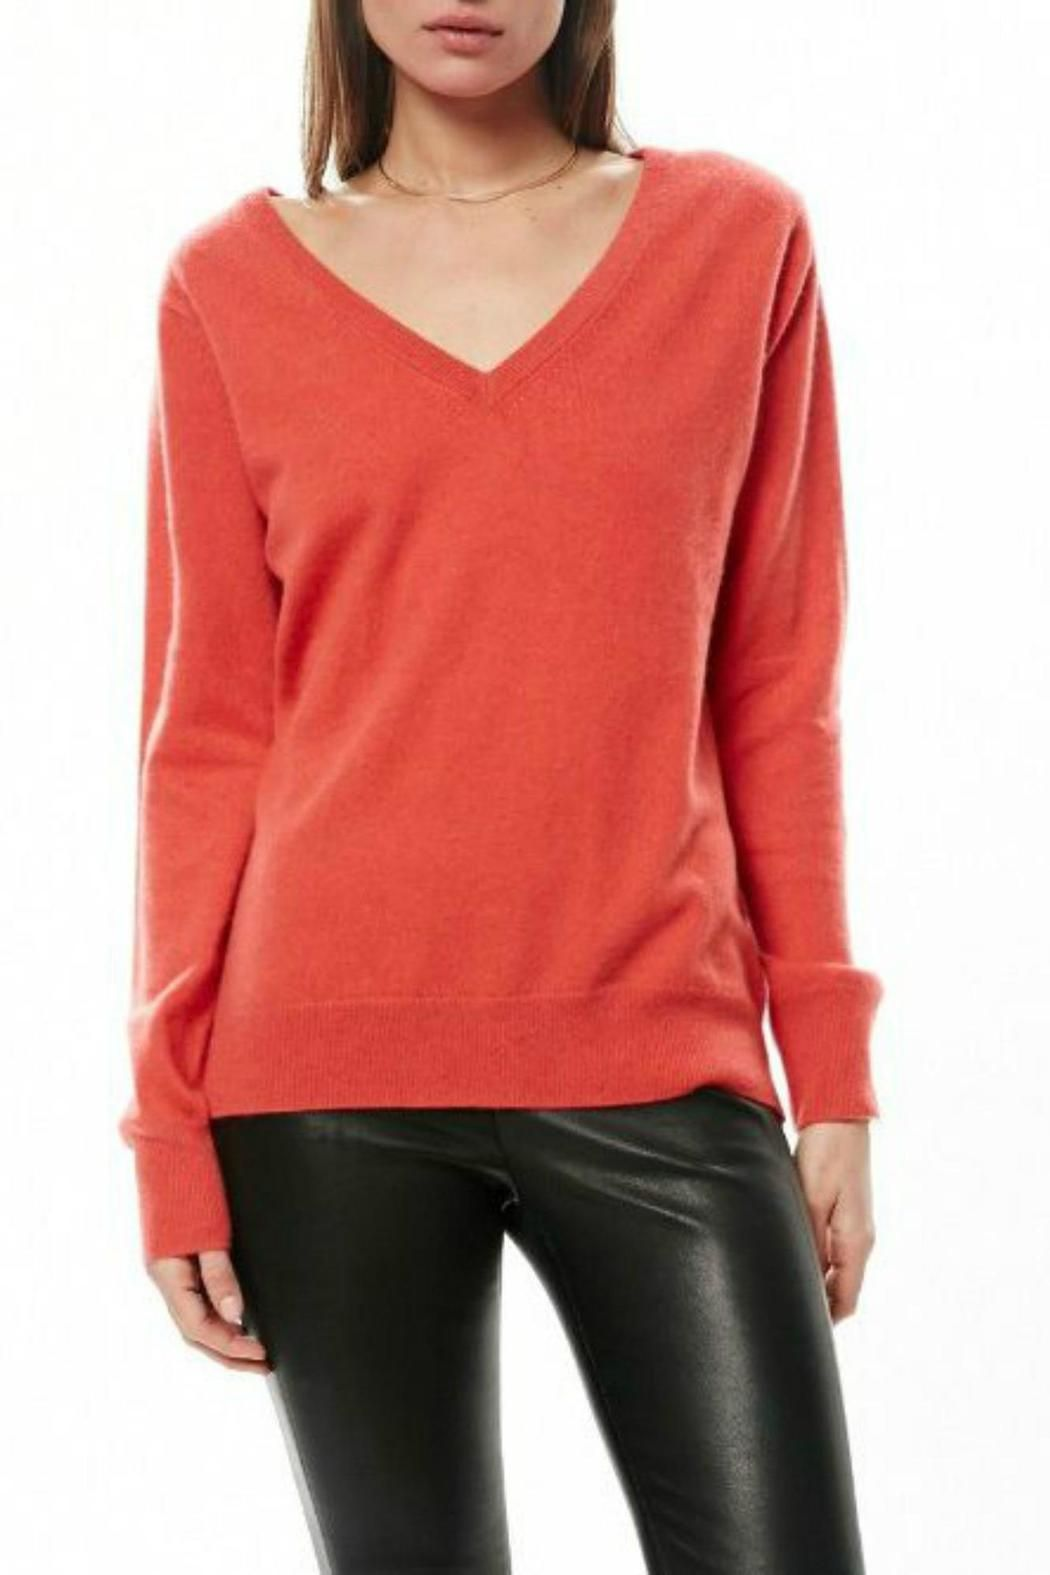 The orange cashmere sweater features a relaxed v in the front and full length zipper in the back. Wear it fully zippered or somewhere in between for a dramatic look. Super soft cashmere and custom VEDA hardware make this sweater one that you definitely need!    Orange Cashmere Sweater by Veda. Clothing - Sweaters - Cashmere Clothing - Sweaters - V-Neck Westchester County, New York